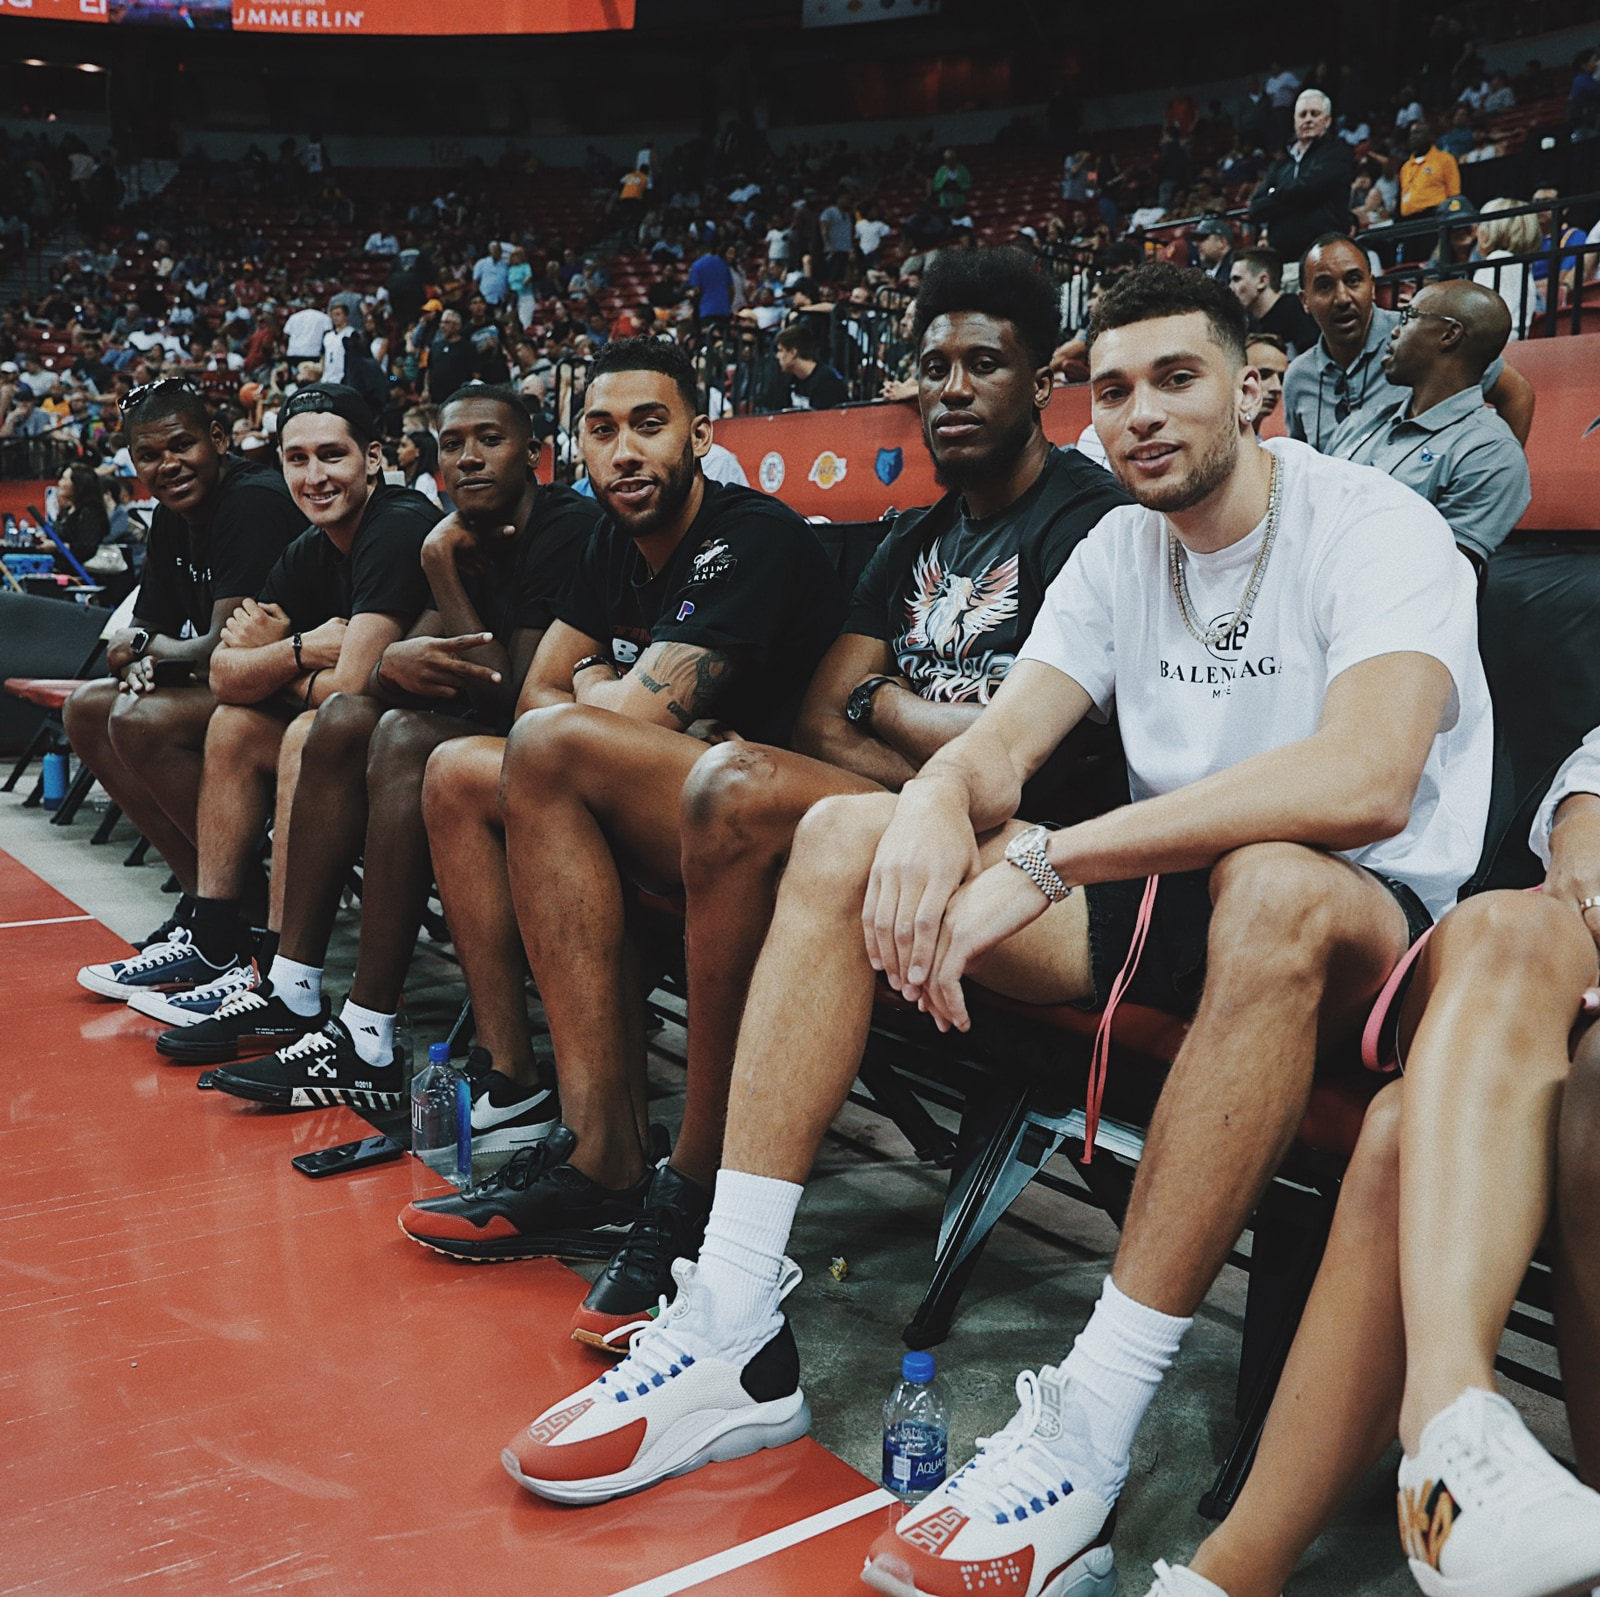 Bulls players were in Las Vegas to support the Bulls Summer League team